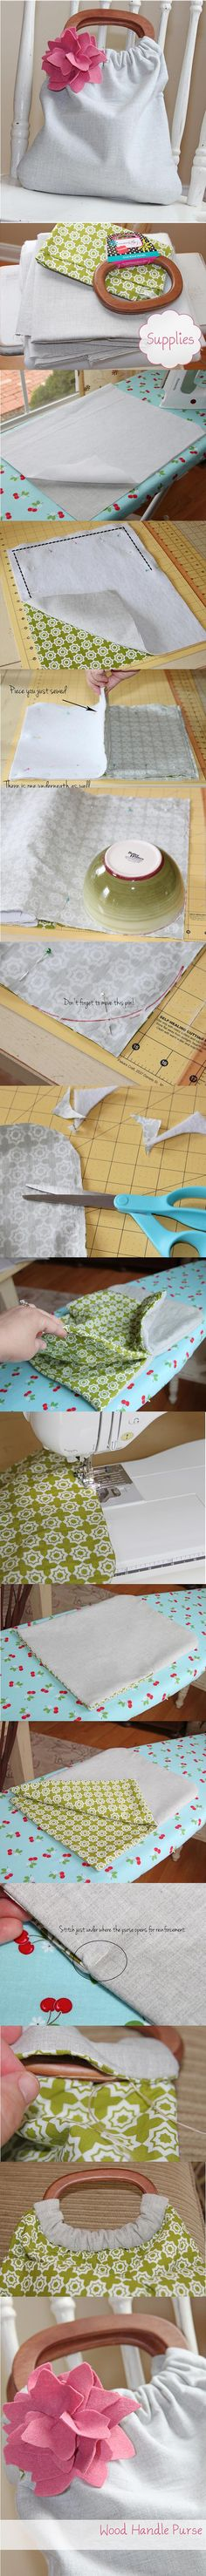 DIY: Bag Made With Wooden Handles And Material